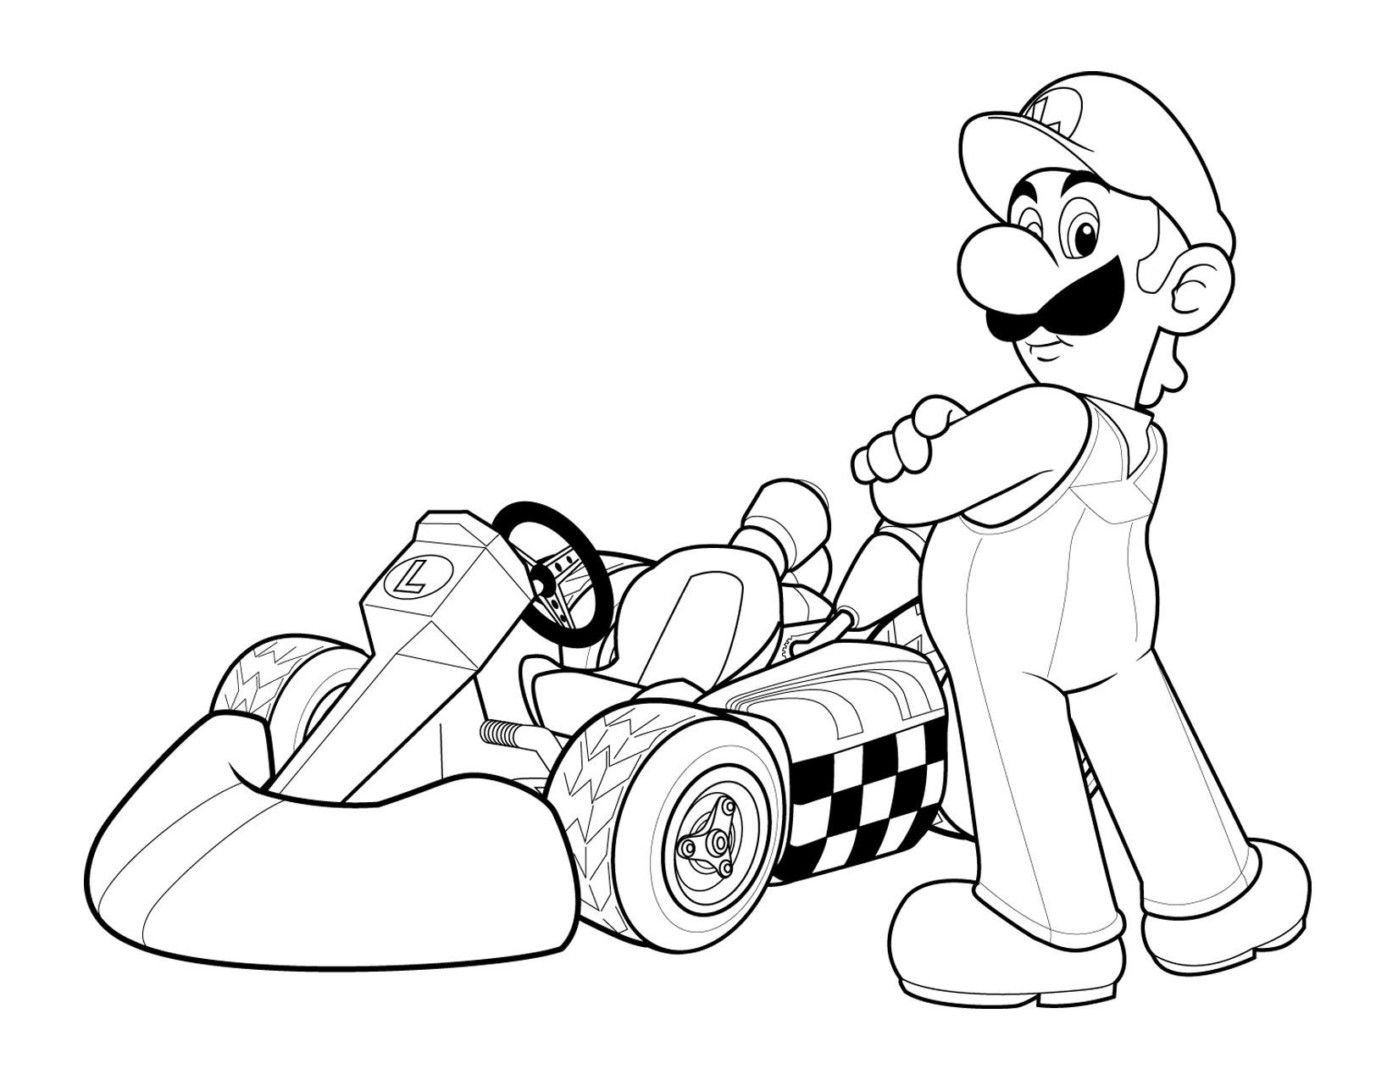 http://colorings.co/mario-kart-coloring-pages/ #Pages, #Coloring ...